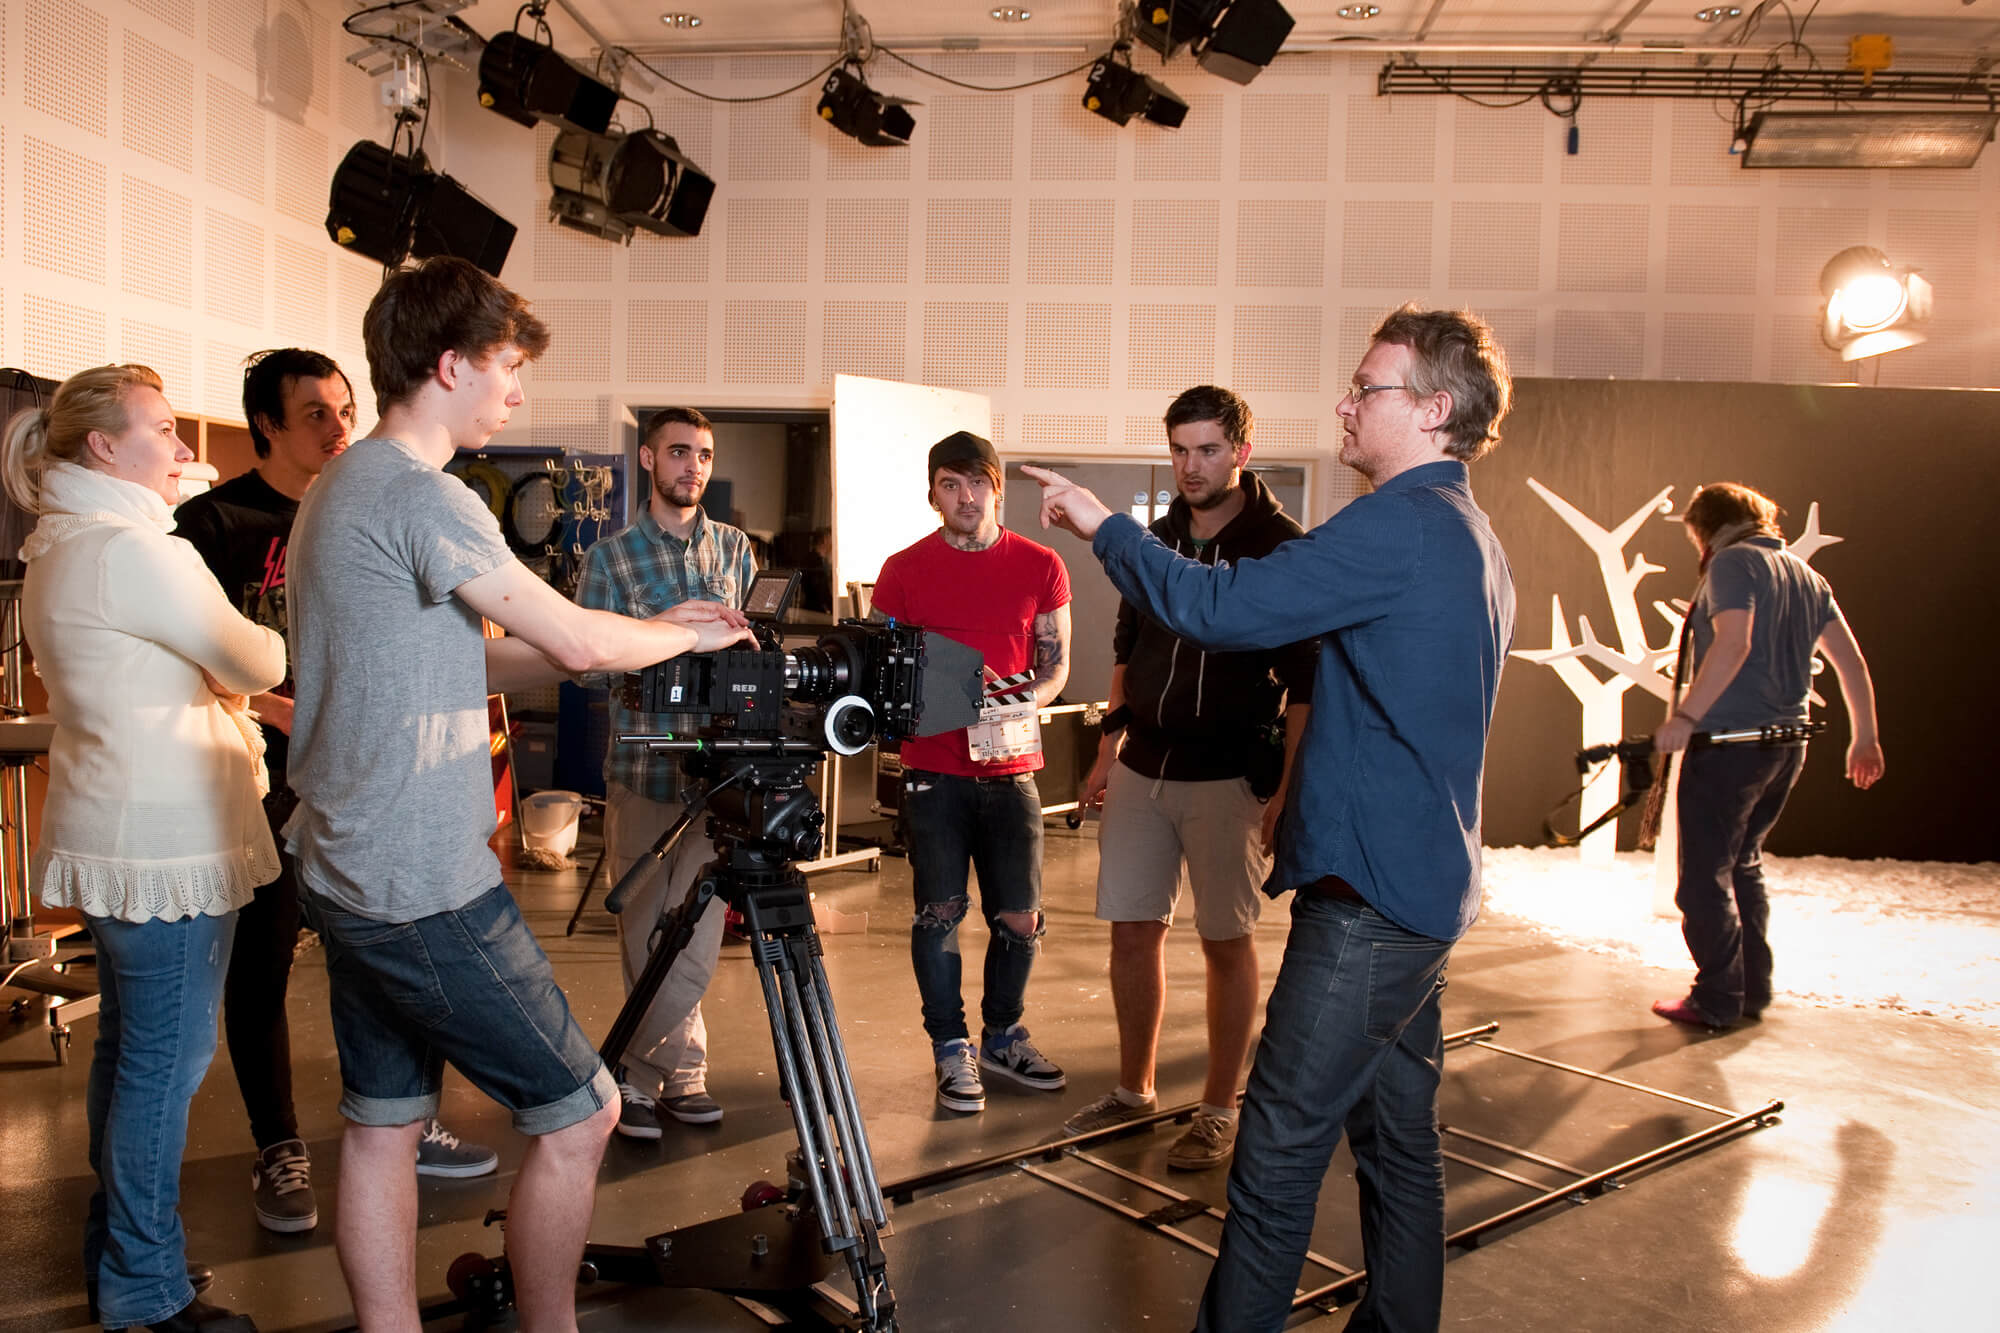 Students working with camera equipment in the Markeaton Street film and television studio.